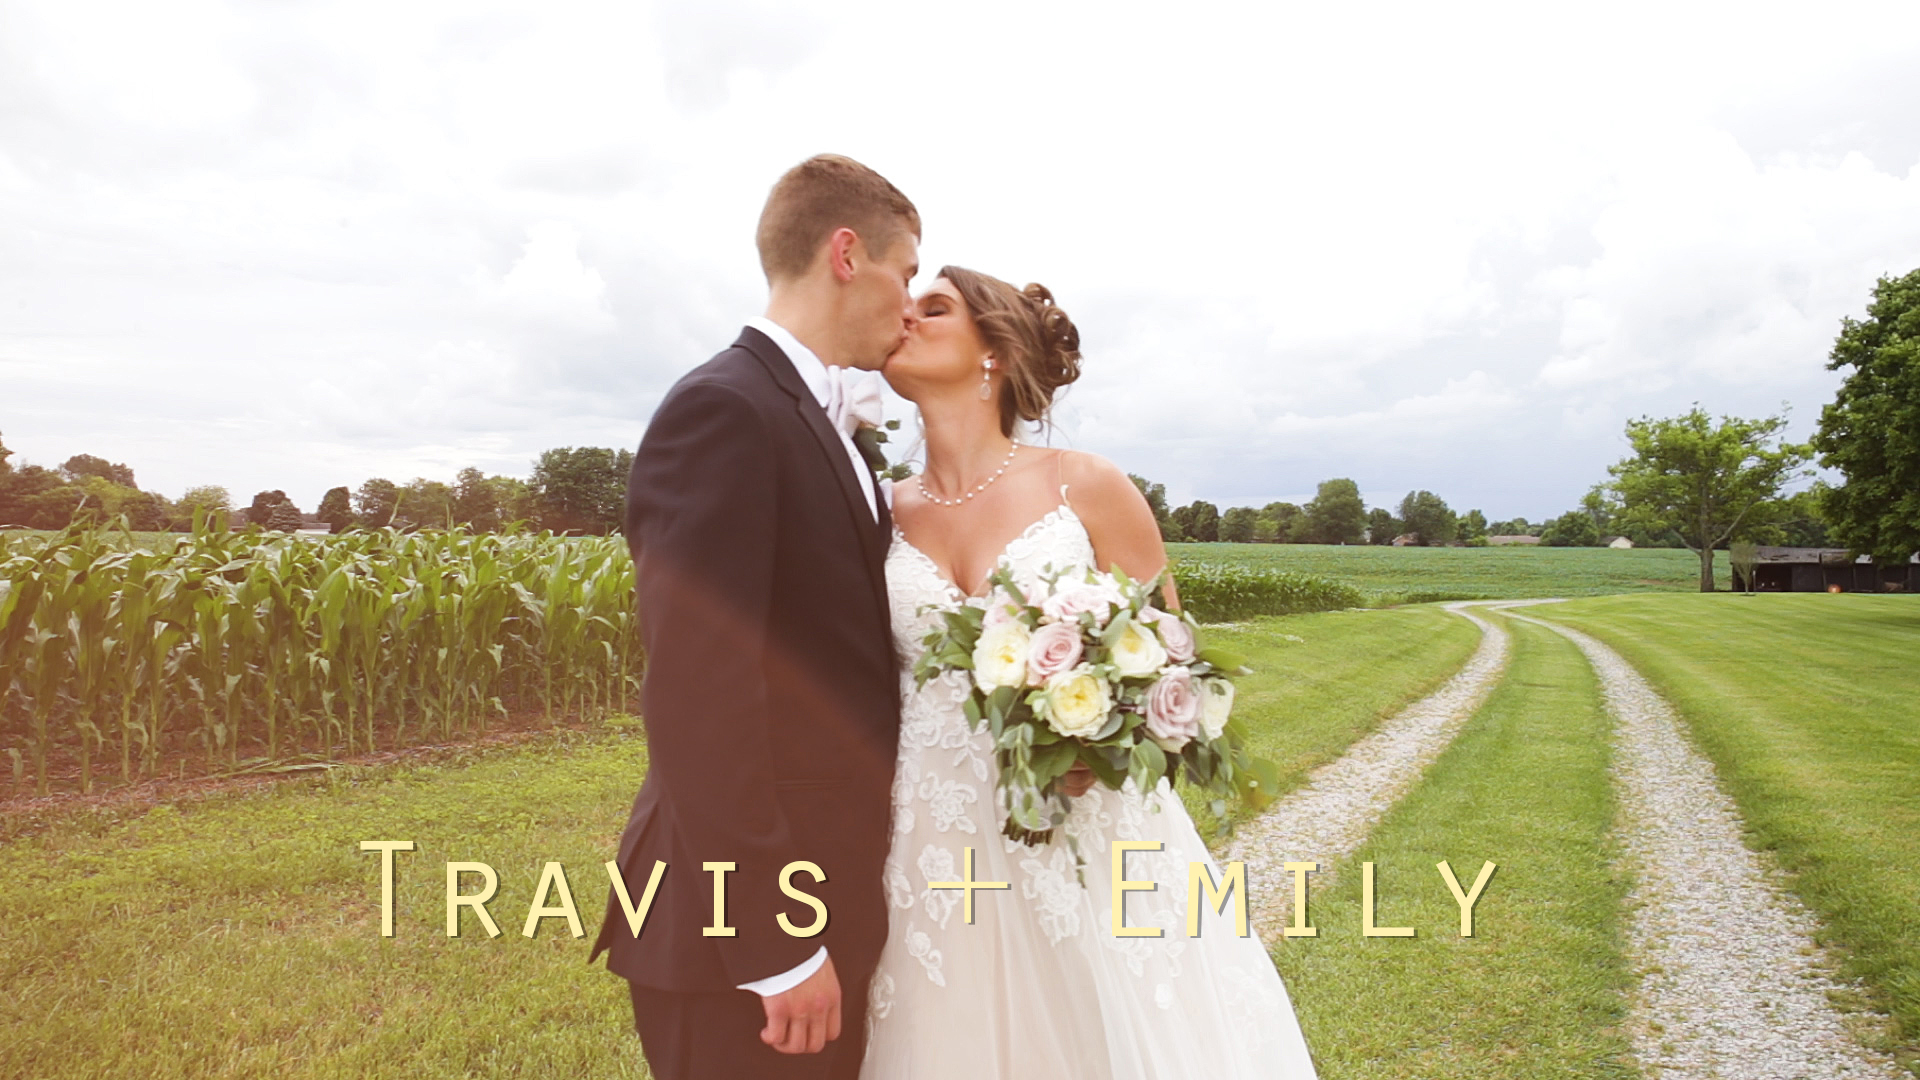 Travis + Emily | Bardstown, Kentucky | Guthrie Opportunity Center